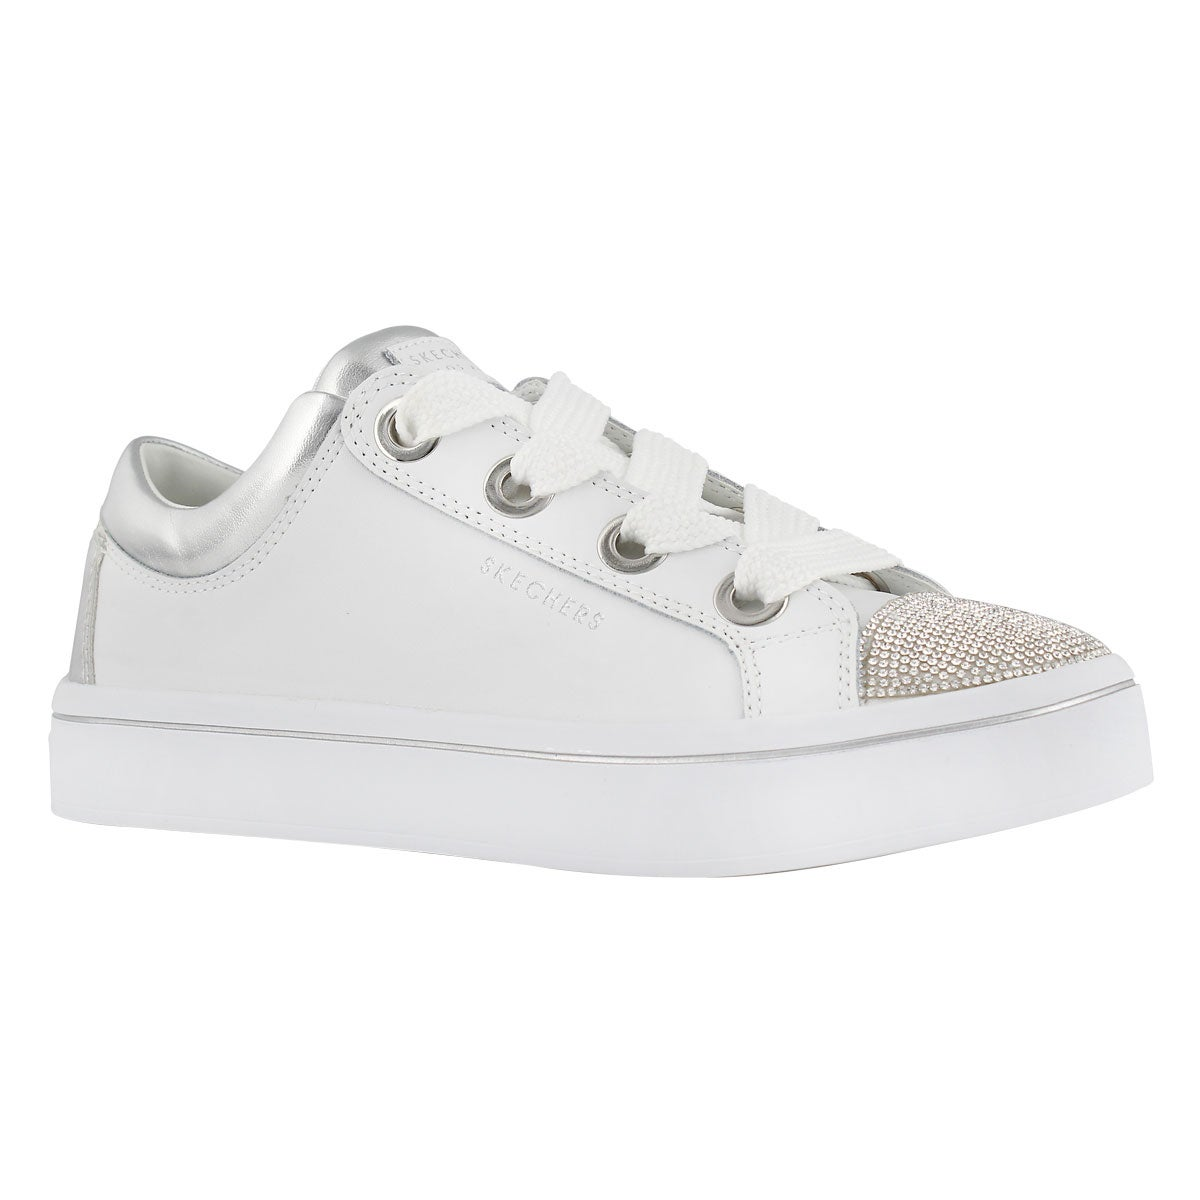 Women's HI-LITES white/silver lace up sneakers